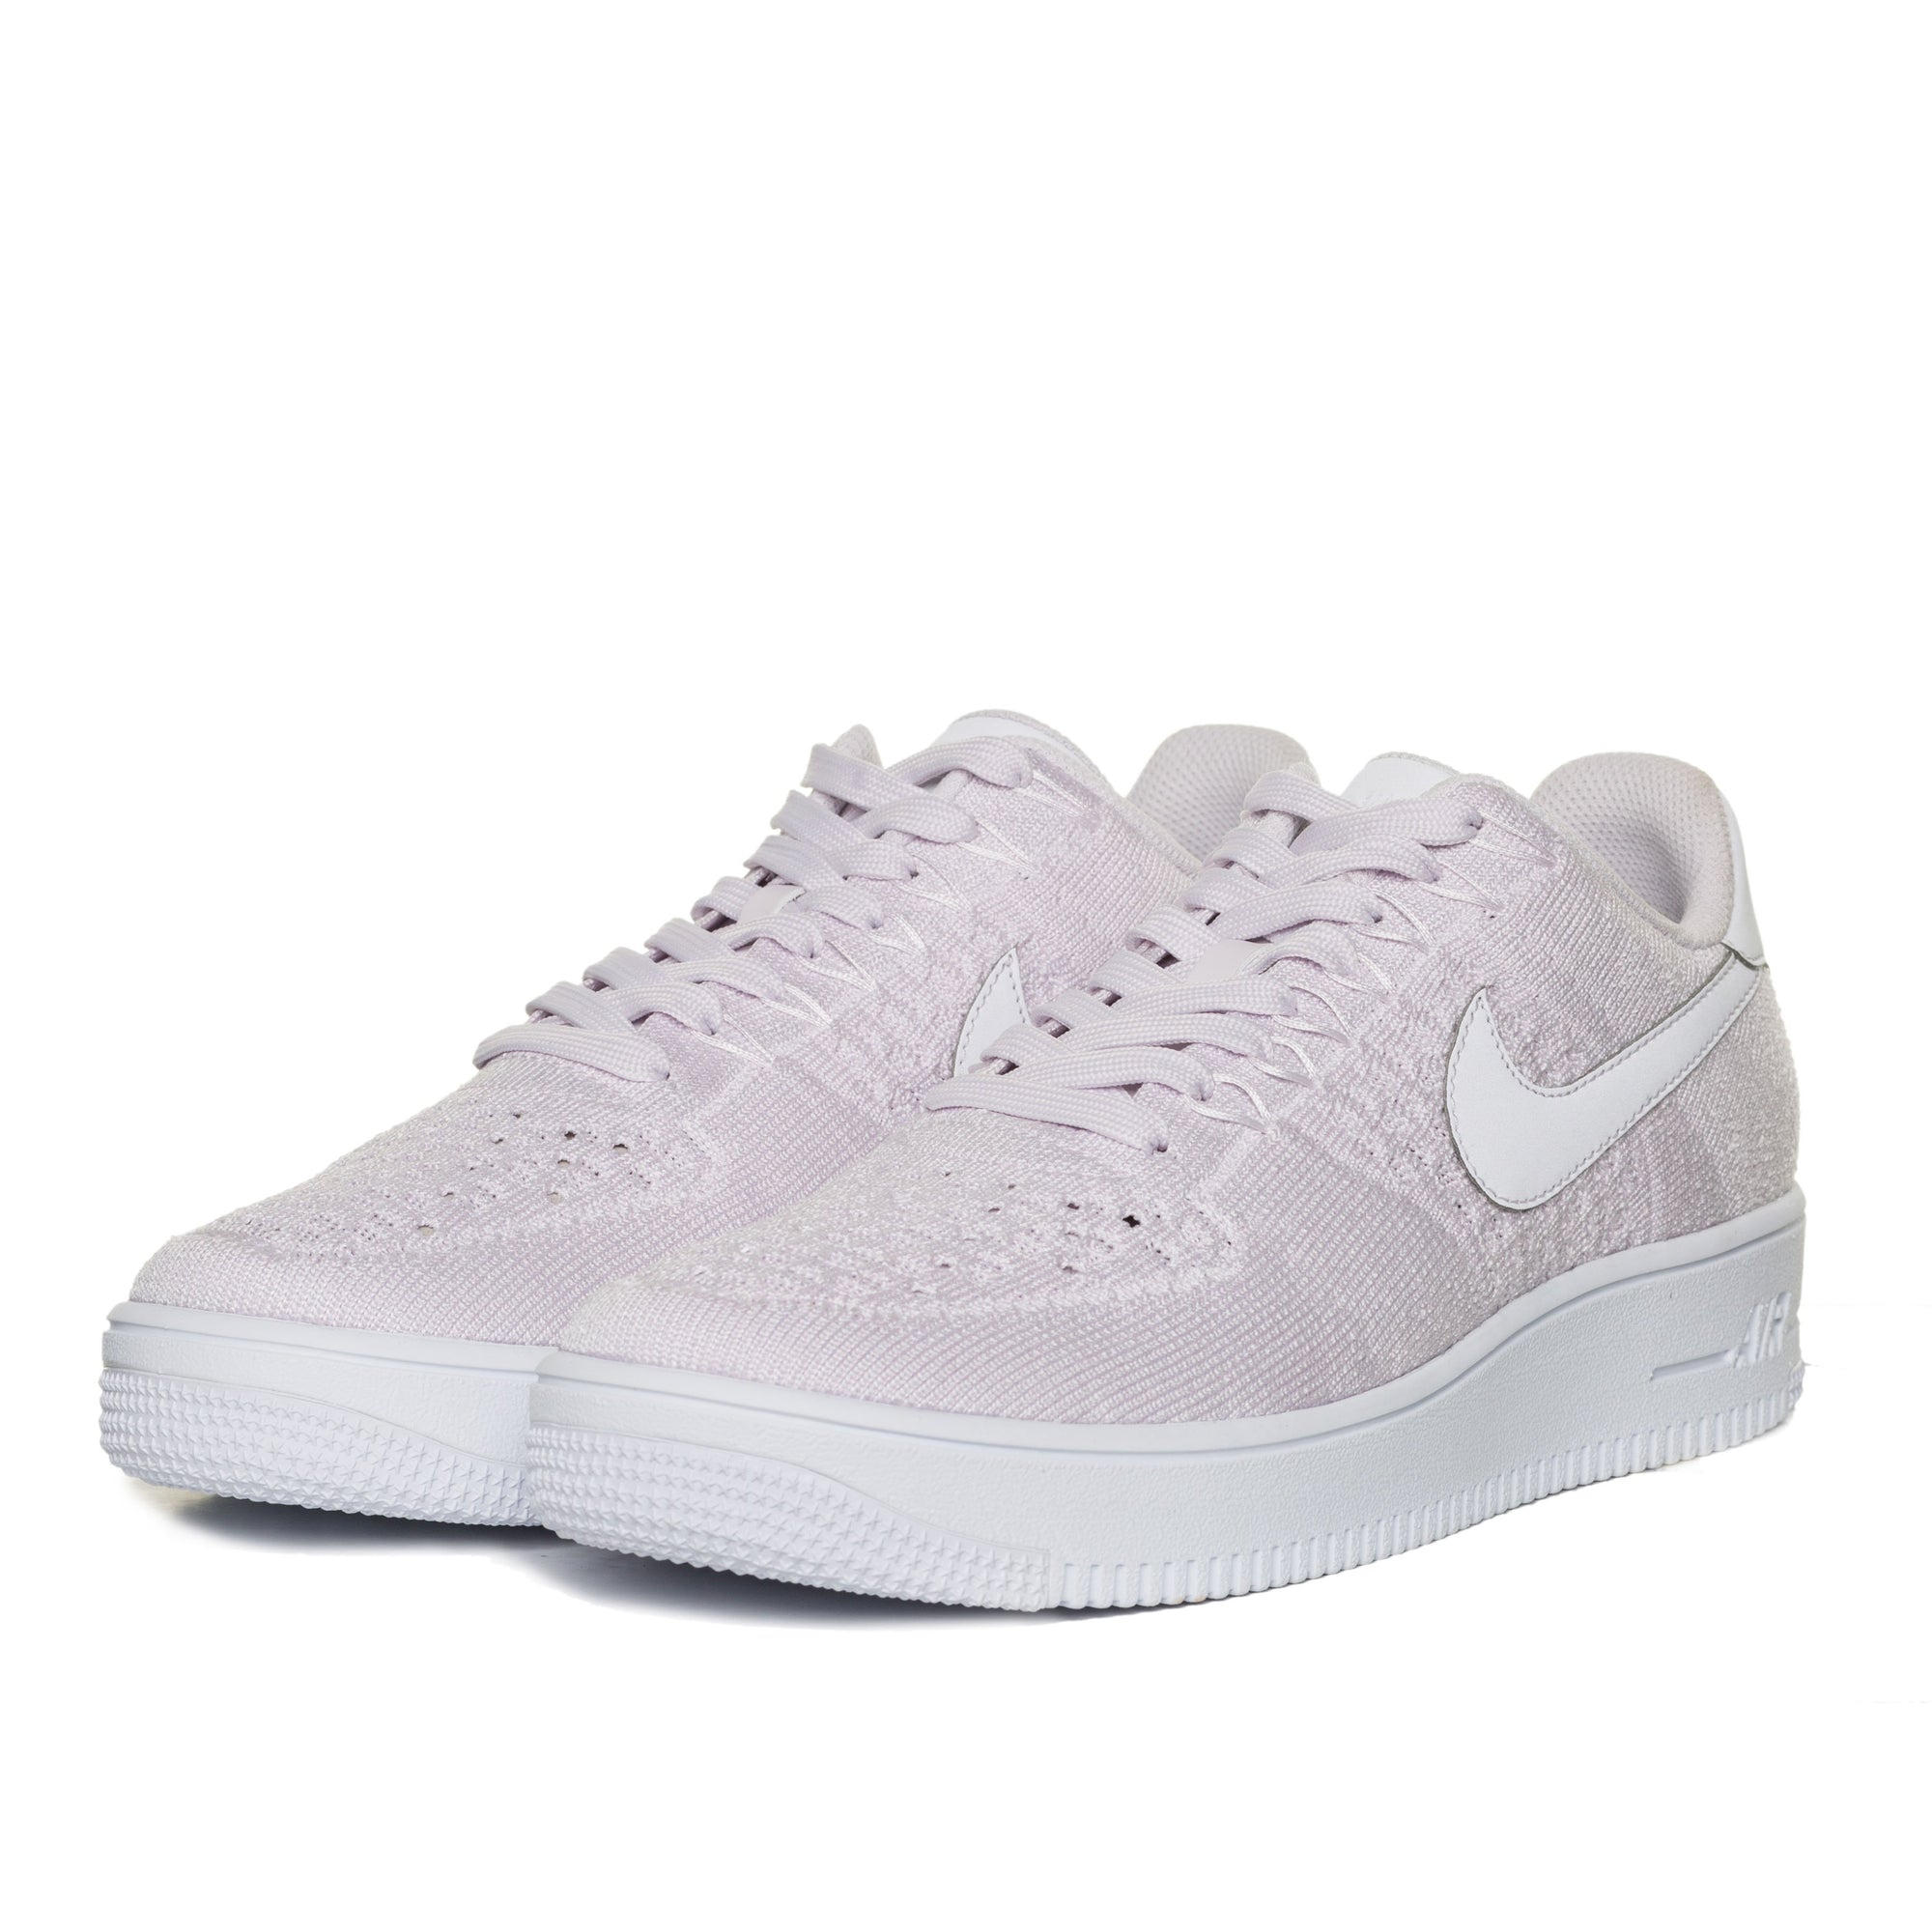 uk availability 91f8a cbe2f Nike Air Force 1 Ultra Flyknit Low